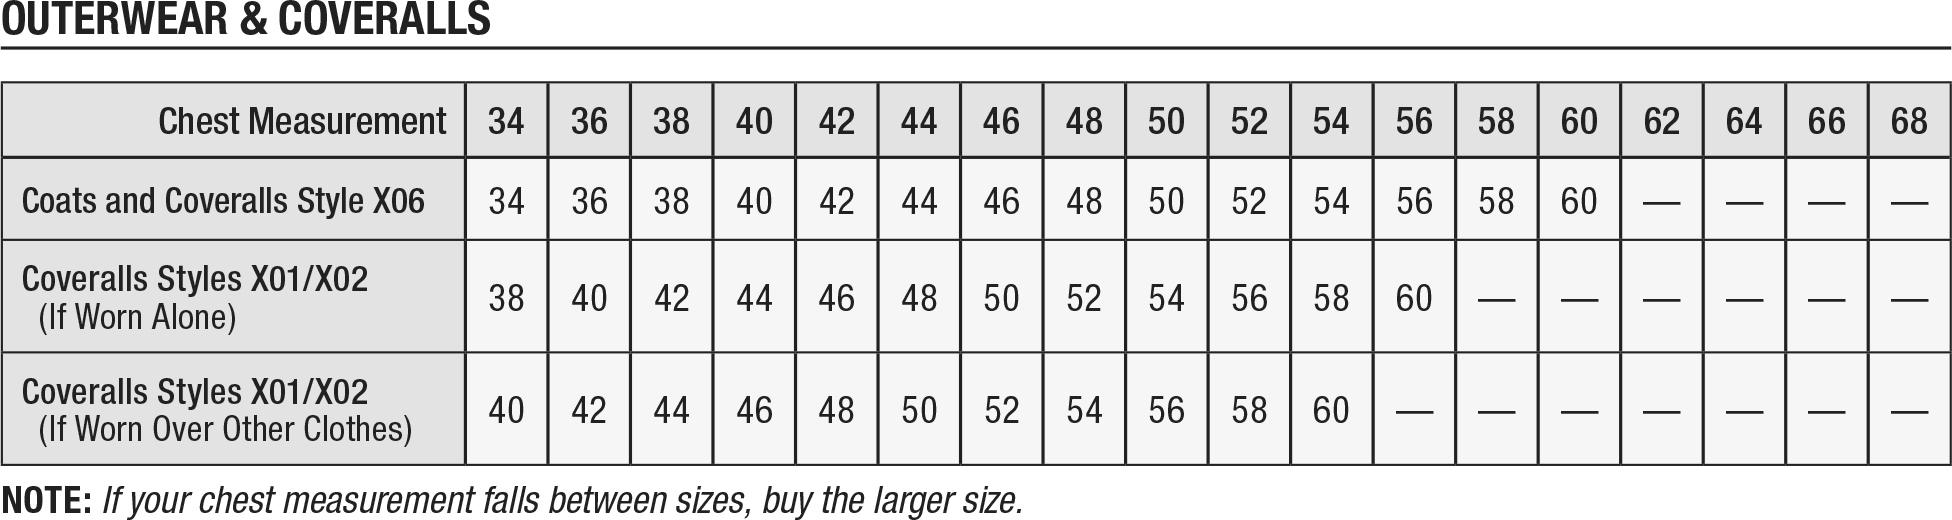 Carhartt Outerware/Coverall Sizing Charts. Use this to determine your size.